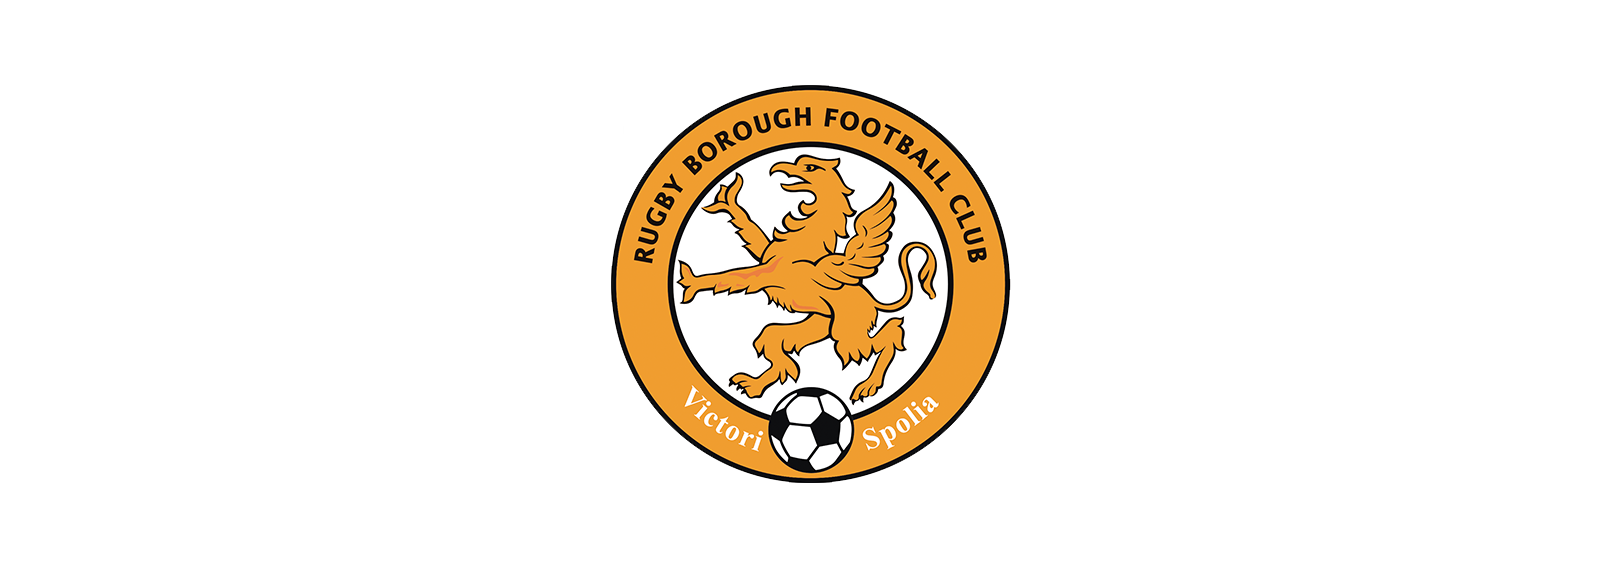 Rugby Borough FC - Crest